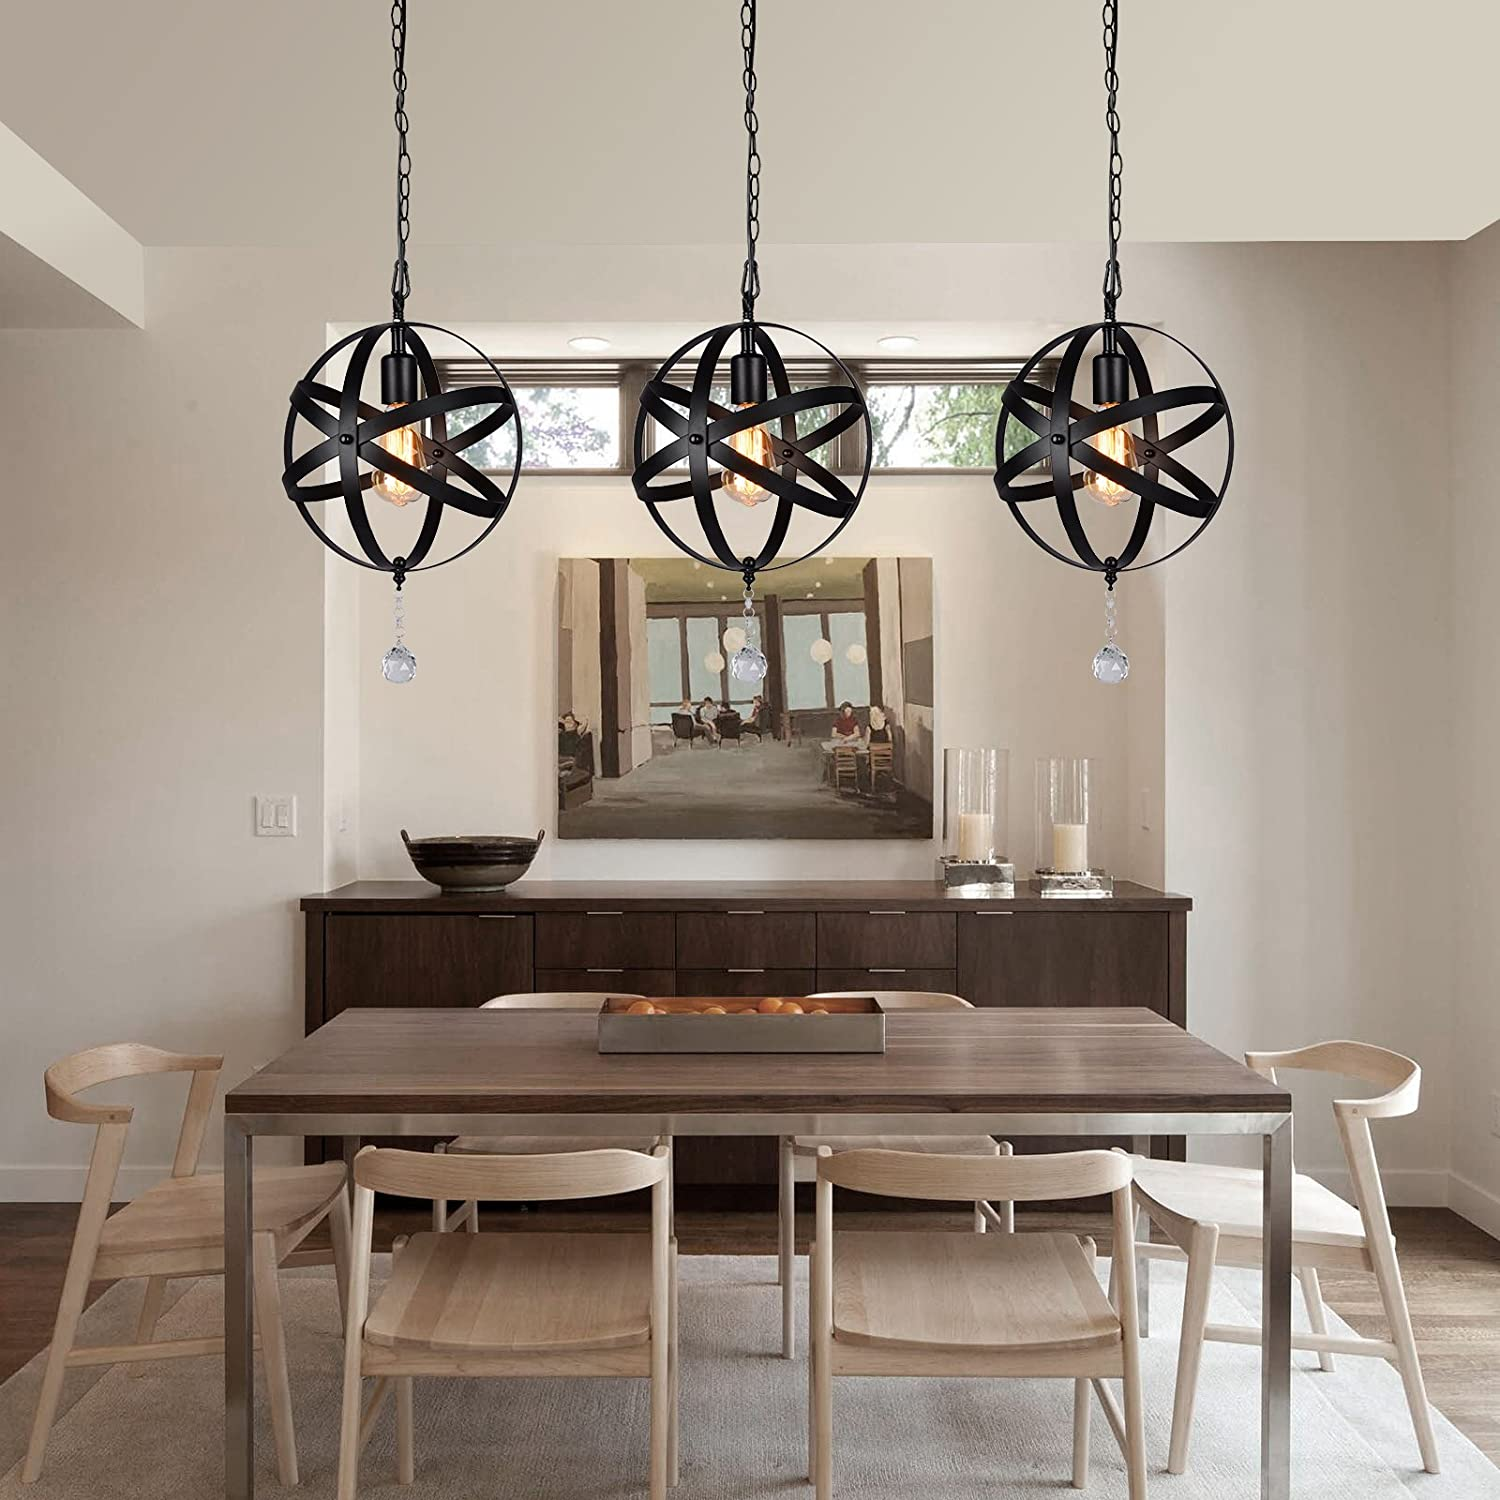 Ceiling Lights Vintage Metal Spherical Lantern Chandelier Swag Ceiling Lighting Fixture For Kitchen Island Bedroom Bar Hmvpl Plug In Industrial Globe Pendant Lights With 16 4ft Hanging Cord And On Off Dimmer Switch Tools